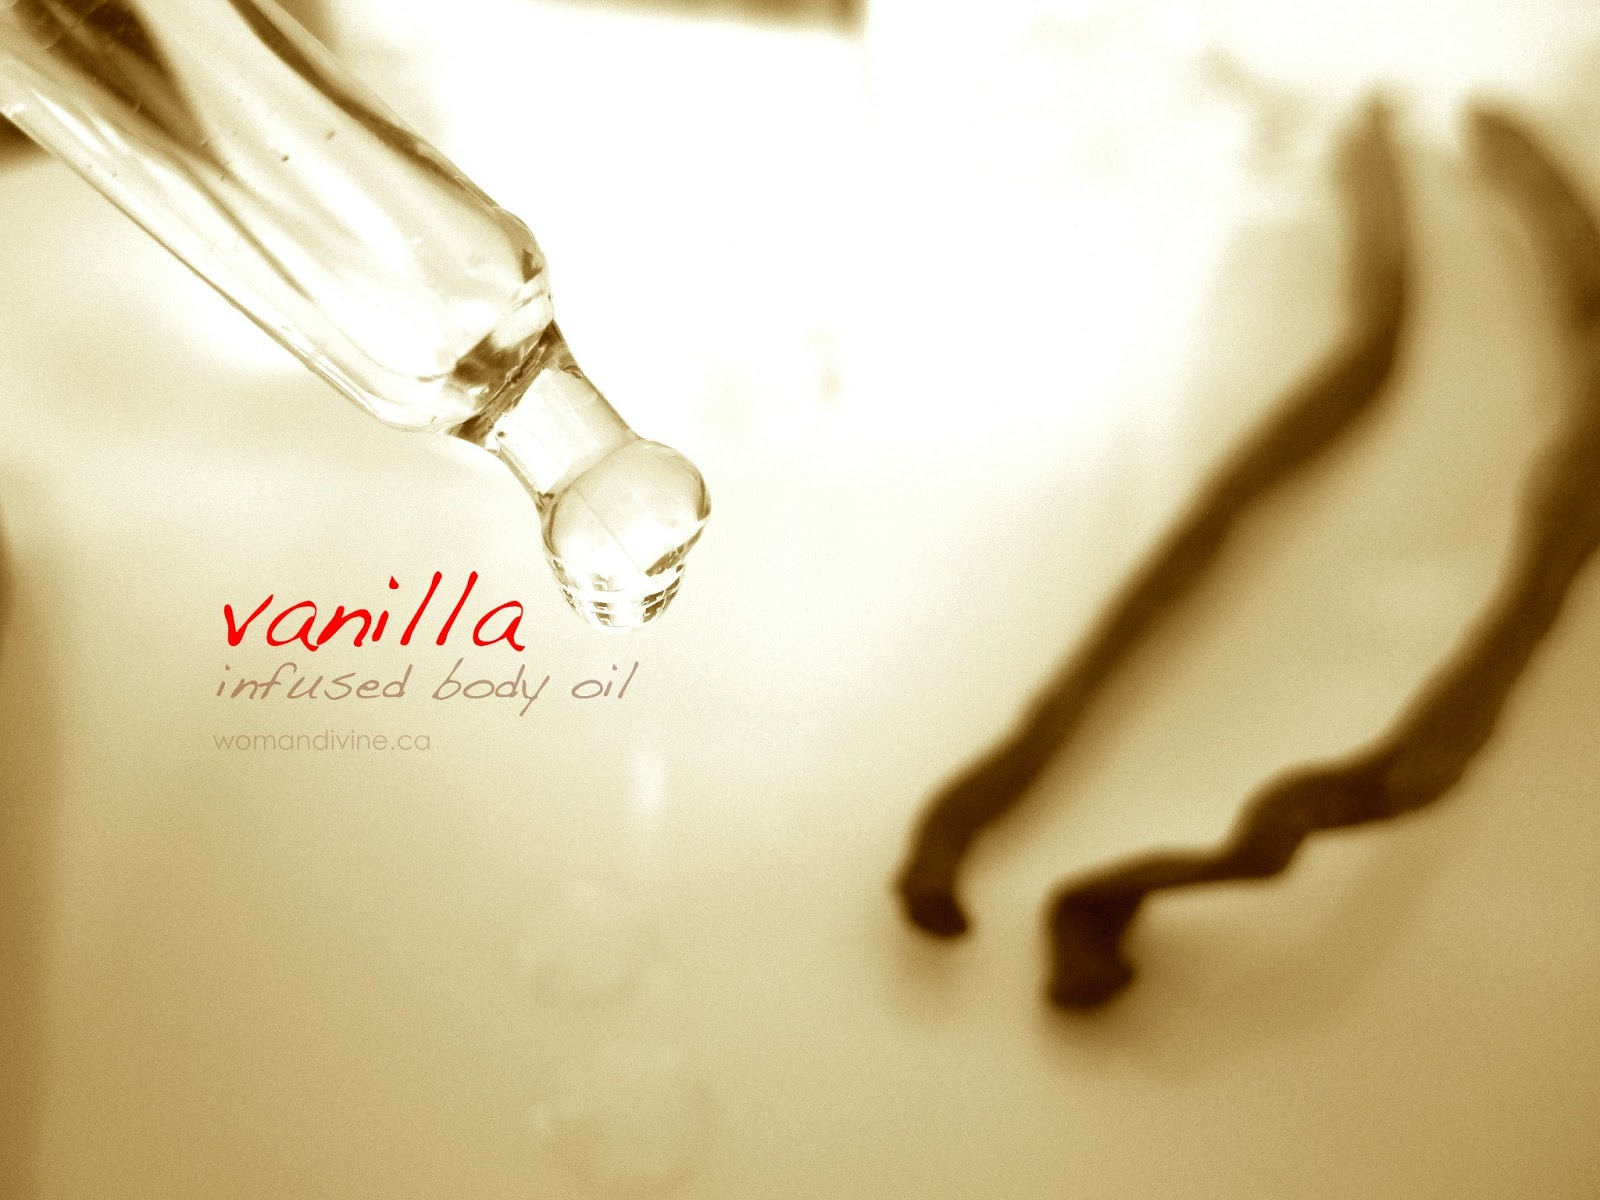 Vanilla body oil by Woman Divine